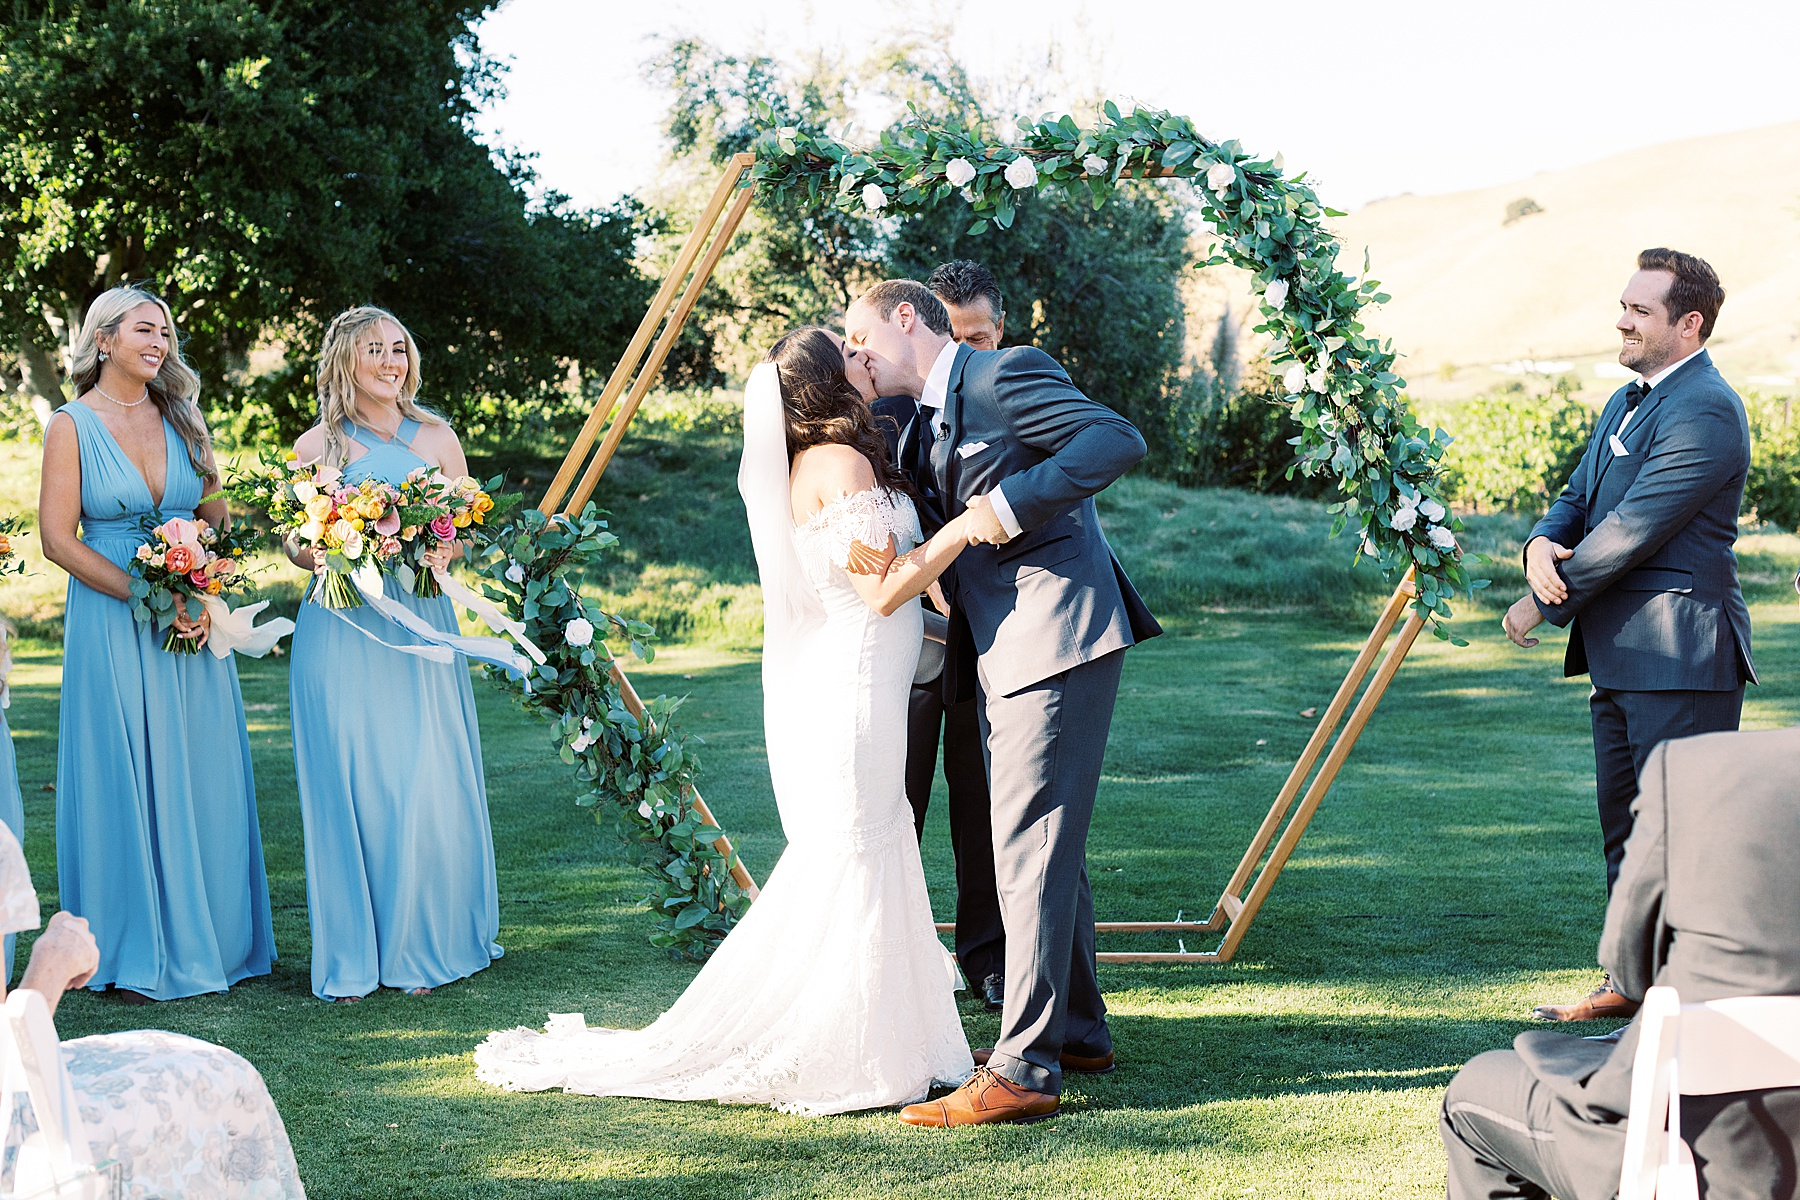 Wente Wedding with A Tropical Color Palette - Ashley & Mike - Featured on Inspired by This - Ashley Baumgartner_0030.jpg